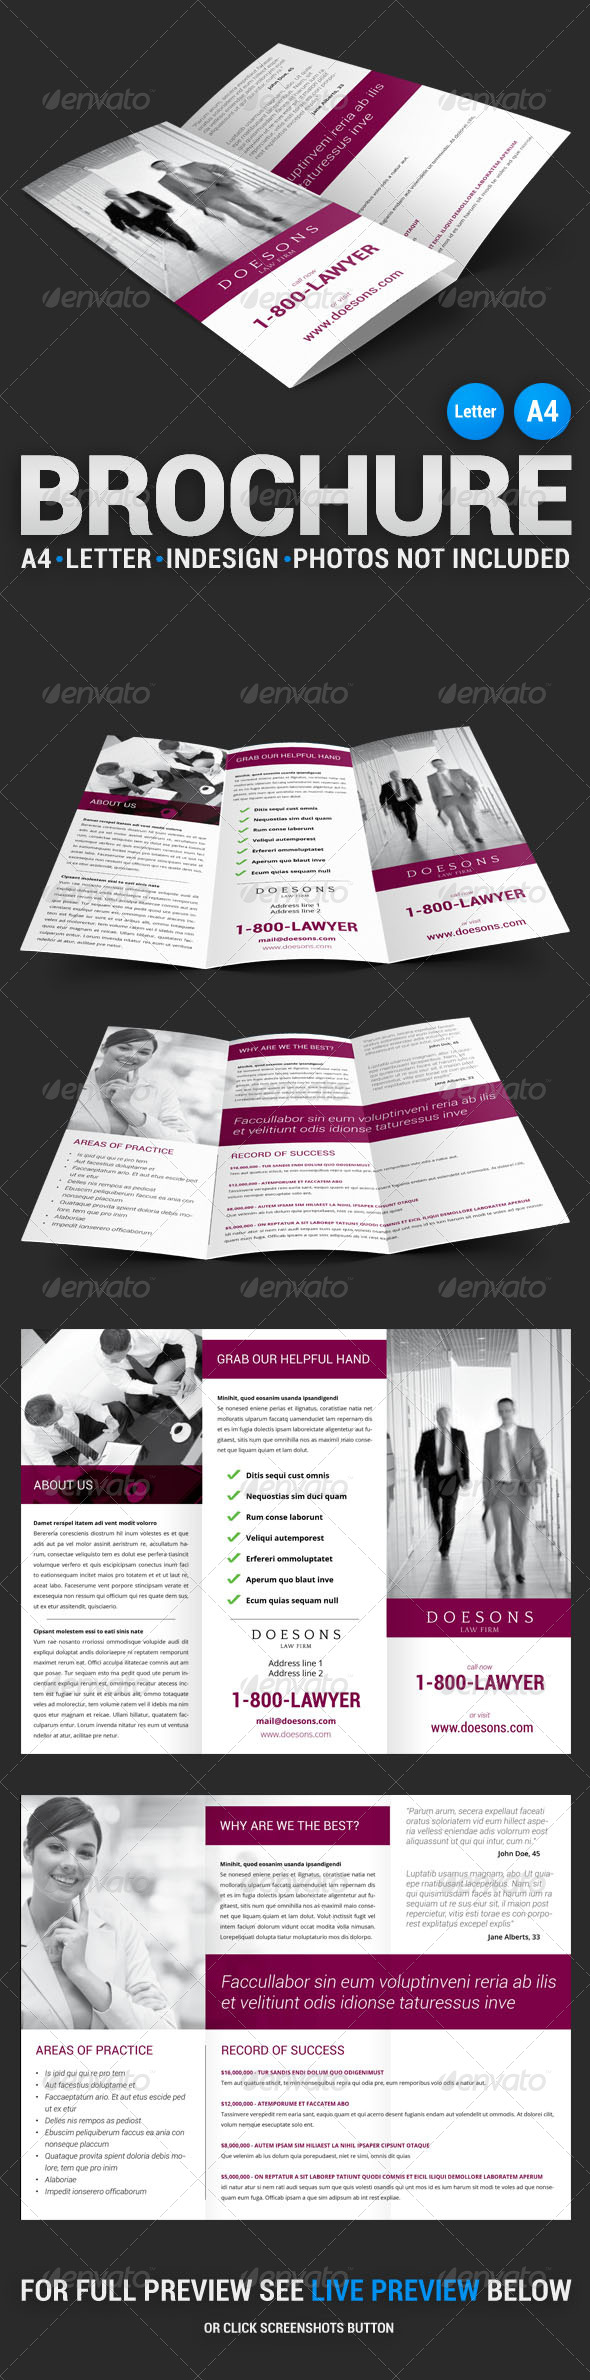 law firm brochure template - print template graphicriver law firm tri fold brochure